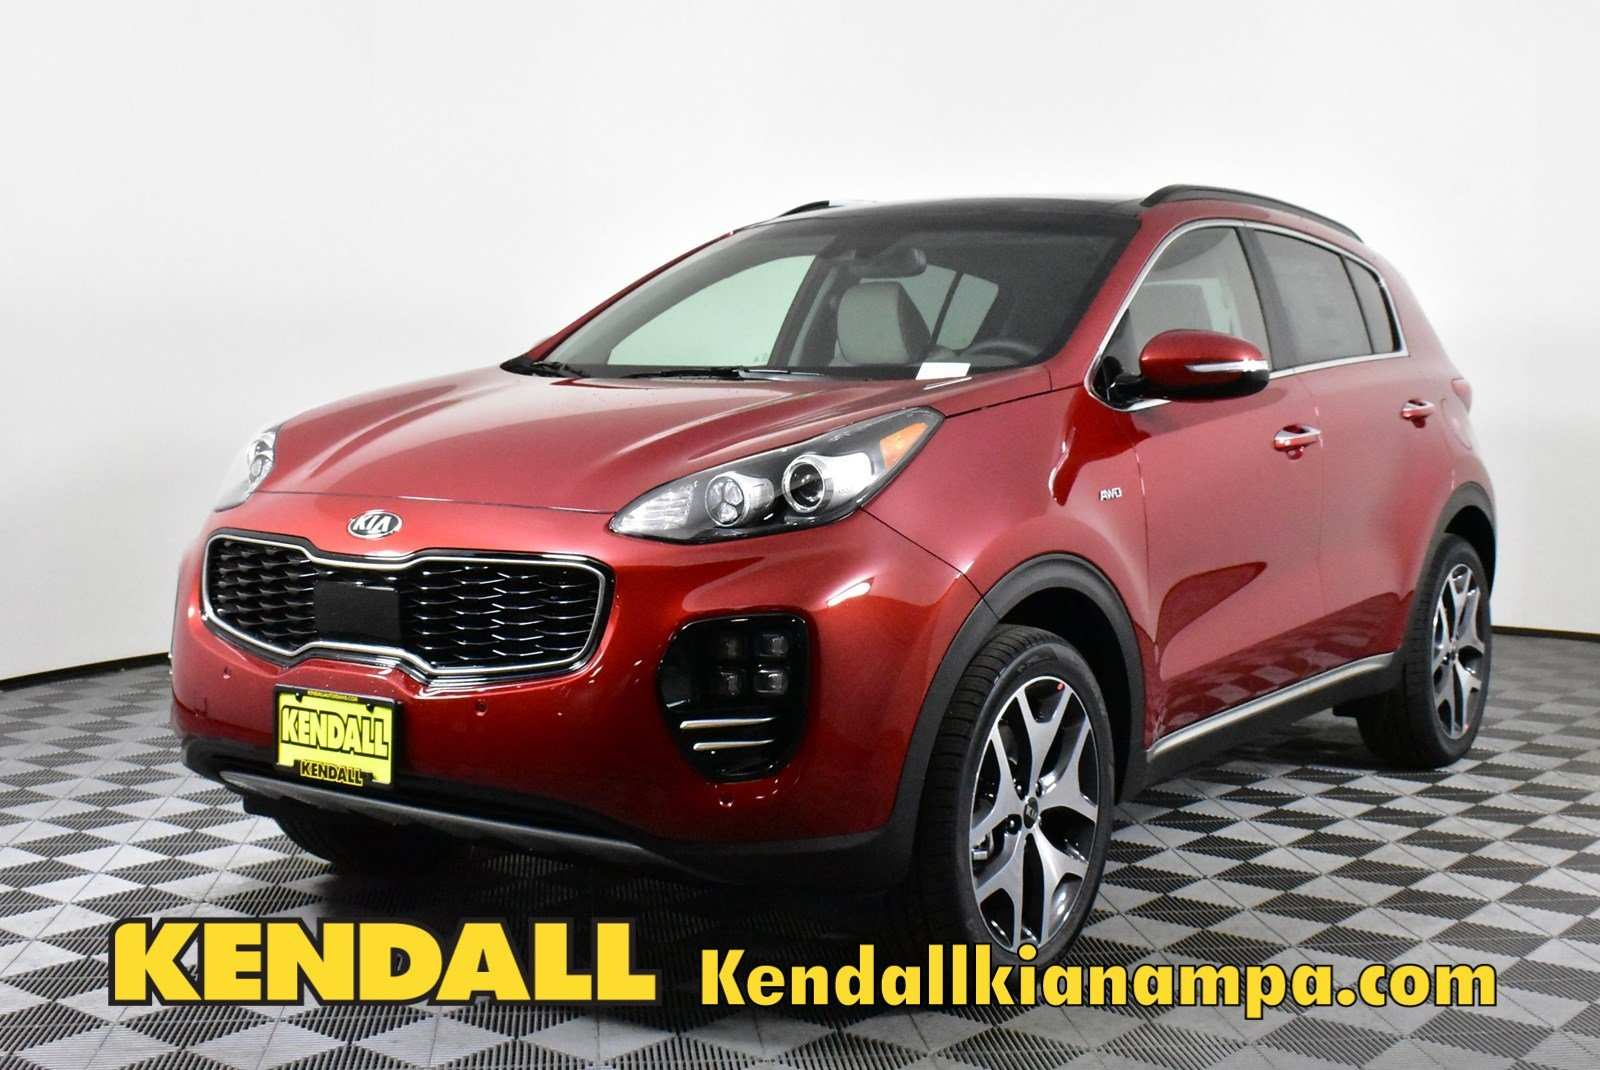 13 Best Review Best 2019 Kia Sportage Sx Turbo Review Performance And New Engine New Concept for Best 2019 Kia Sportage Sx Turbo Review Performance And New Engine